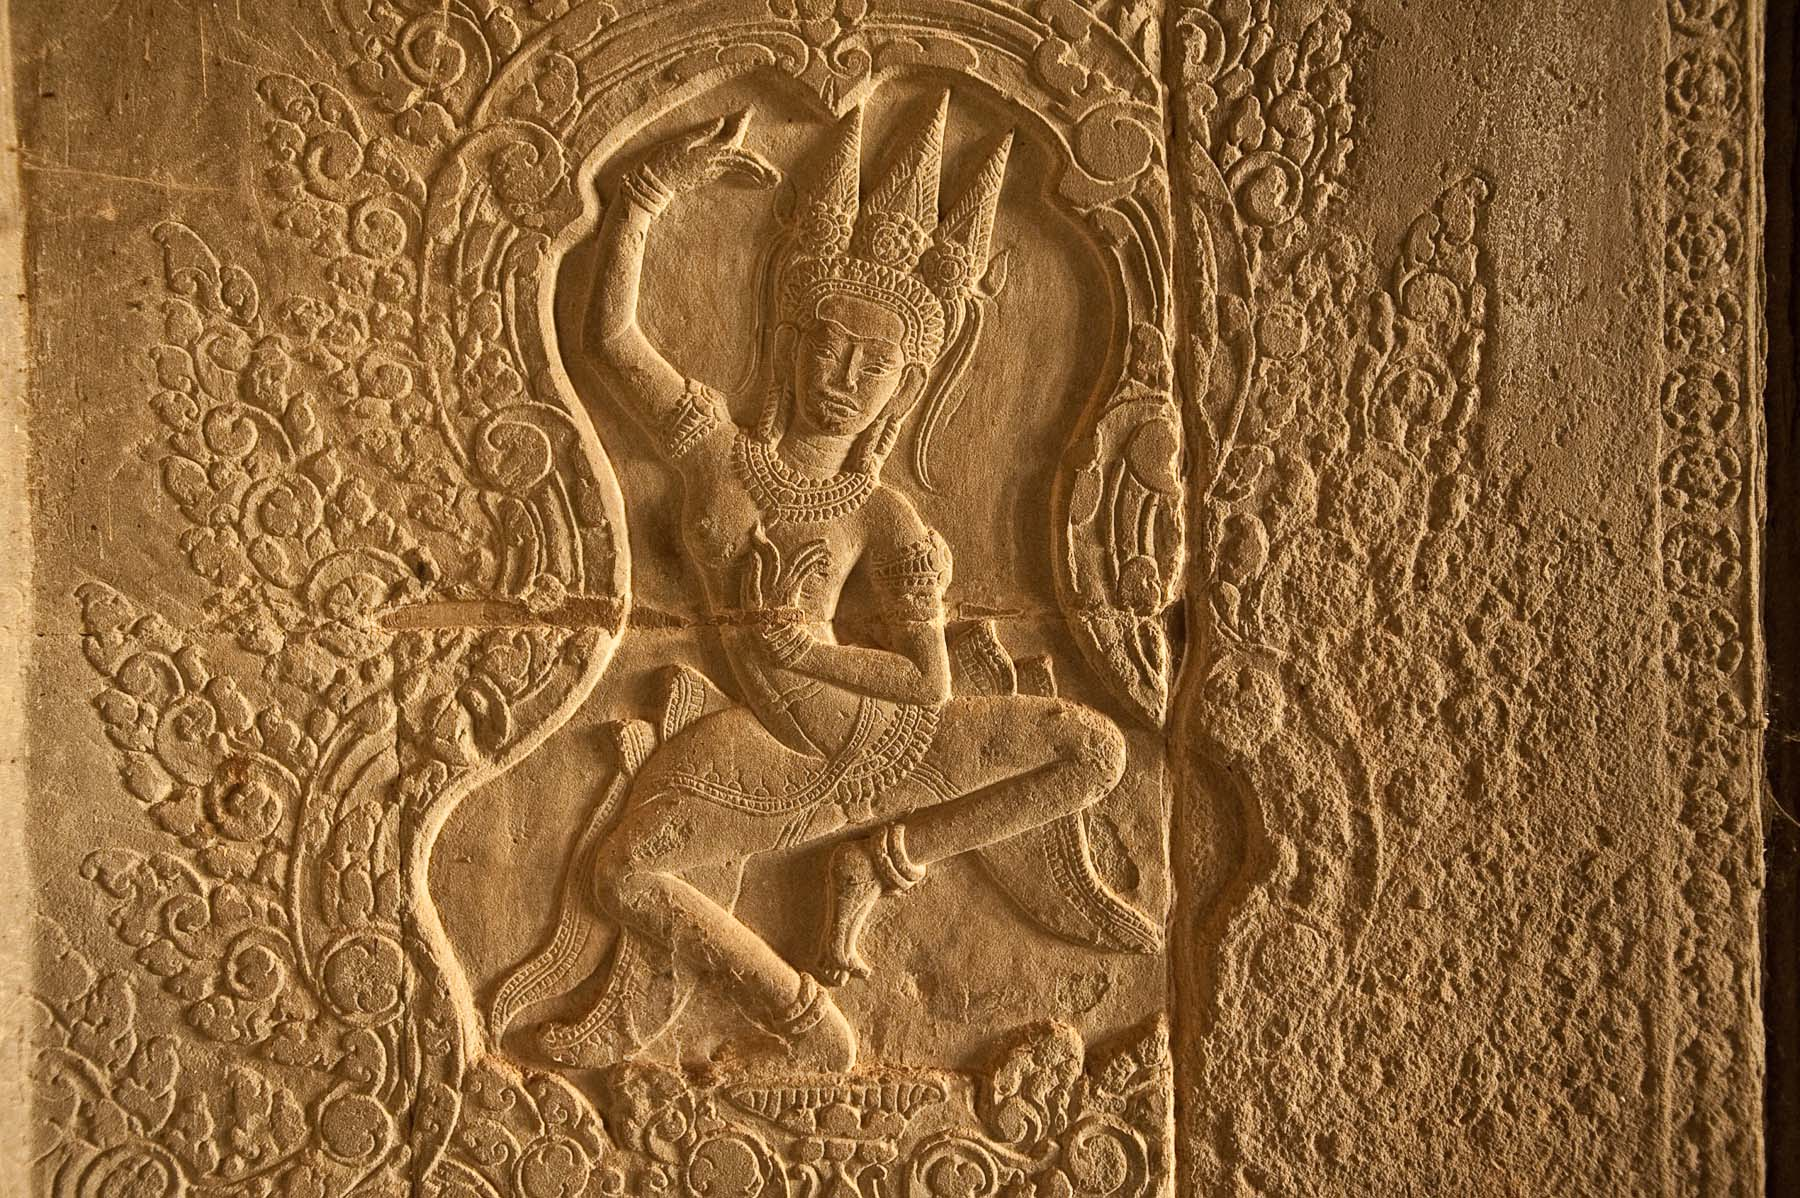 Apsara dancer carving, Ankor Wat temple,  Siem Reap Cambodia.